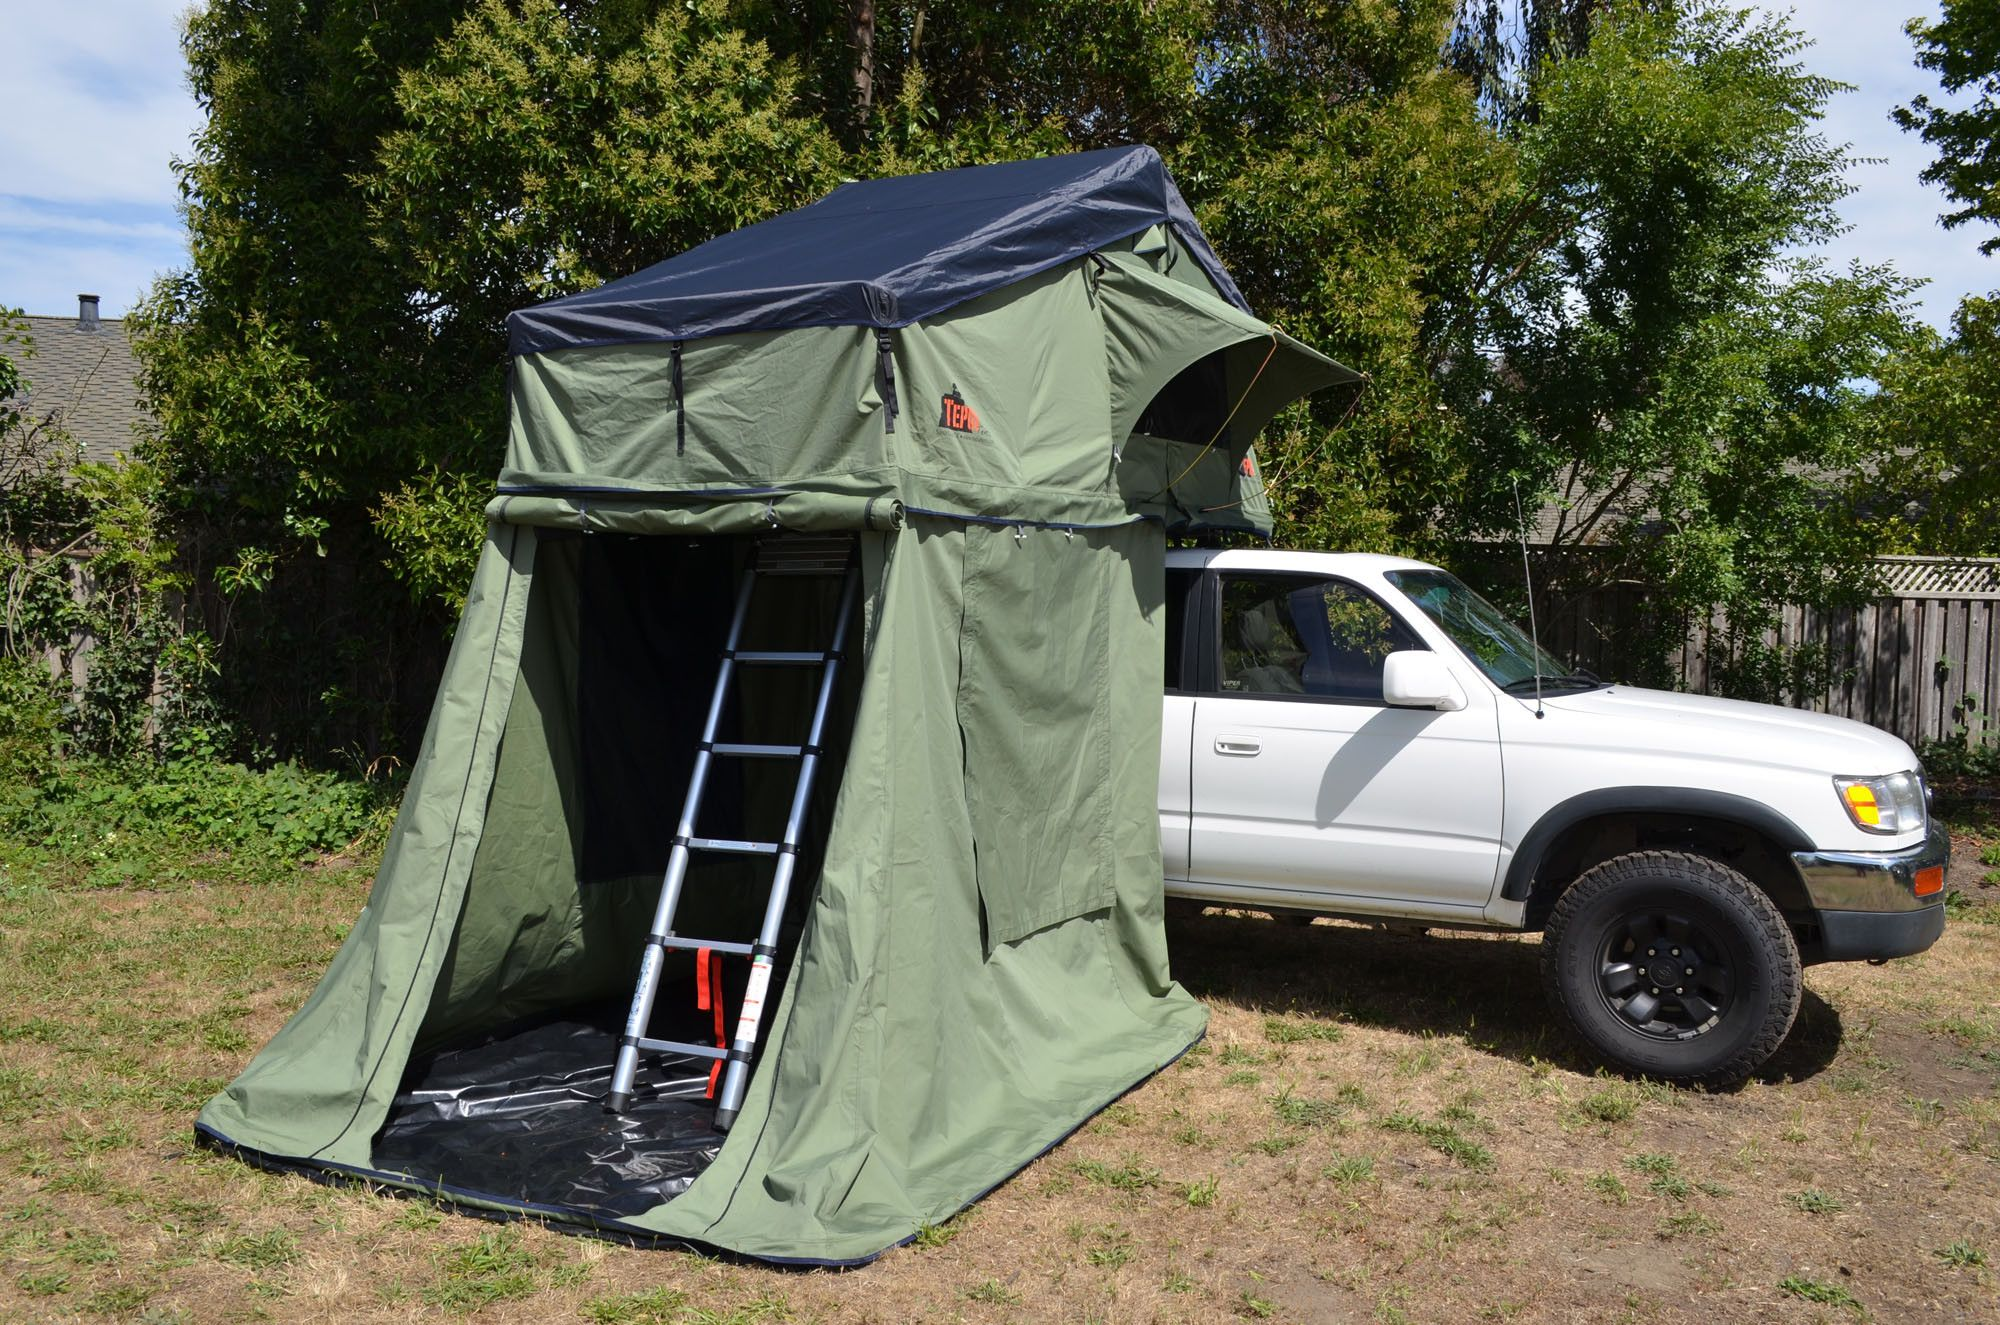 Here Is A Look Inside The Annex Of A Autana Model Tent Unit Notice How The Ladder Is Enclosed Inside It Roof Top Tent Top Tents Tent